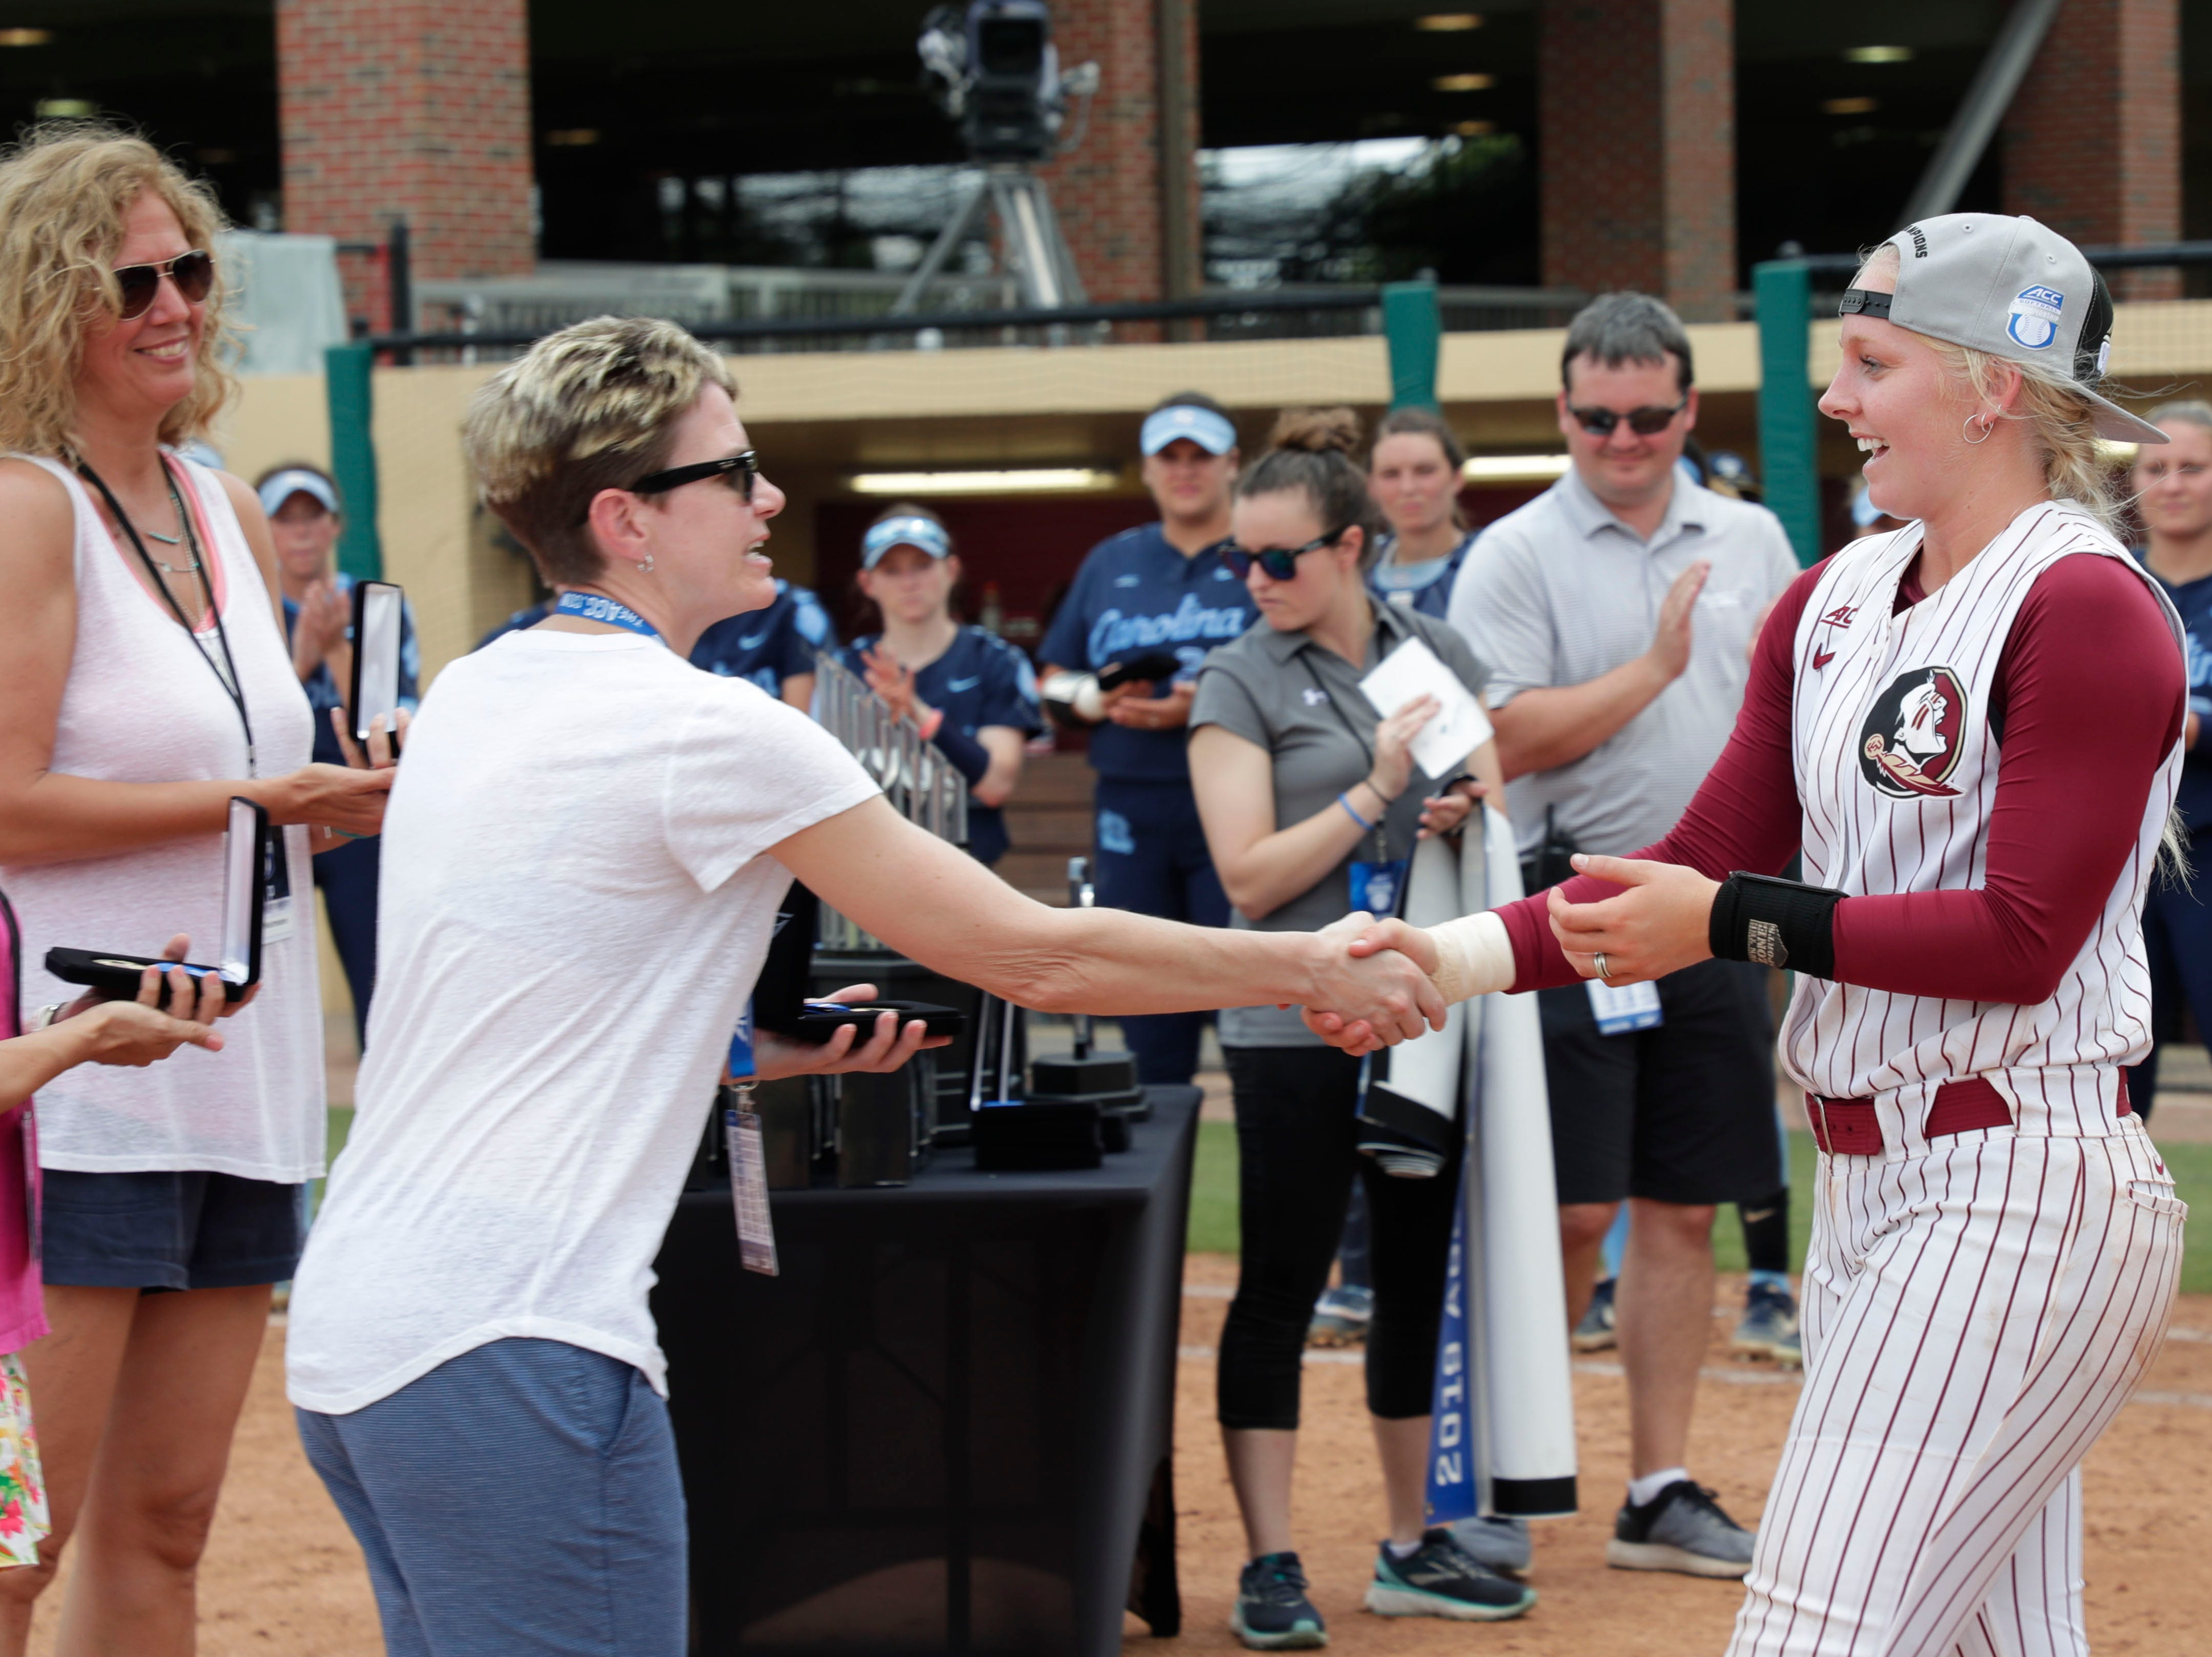 Florida State Seminoles utility player Sydney Sherrill (24) receives an award. The Florida State Seminoles celebrate their victory over the UNC Tar Heels for the ACC Softball Championship title Saturday, May 11, 2019.